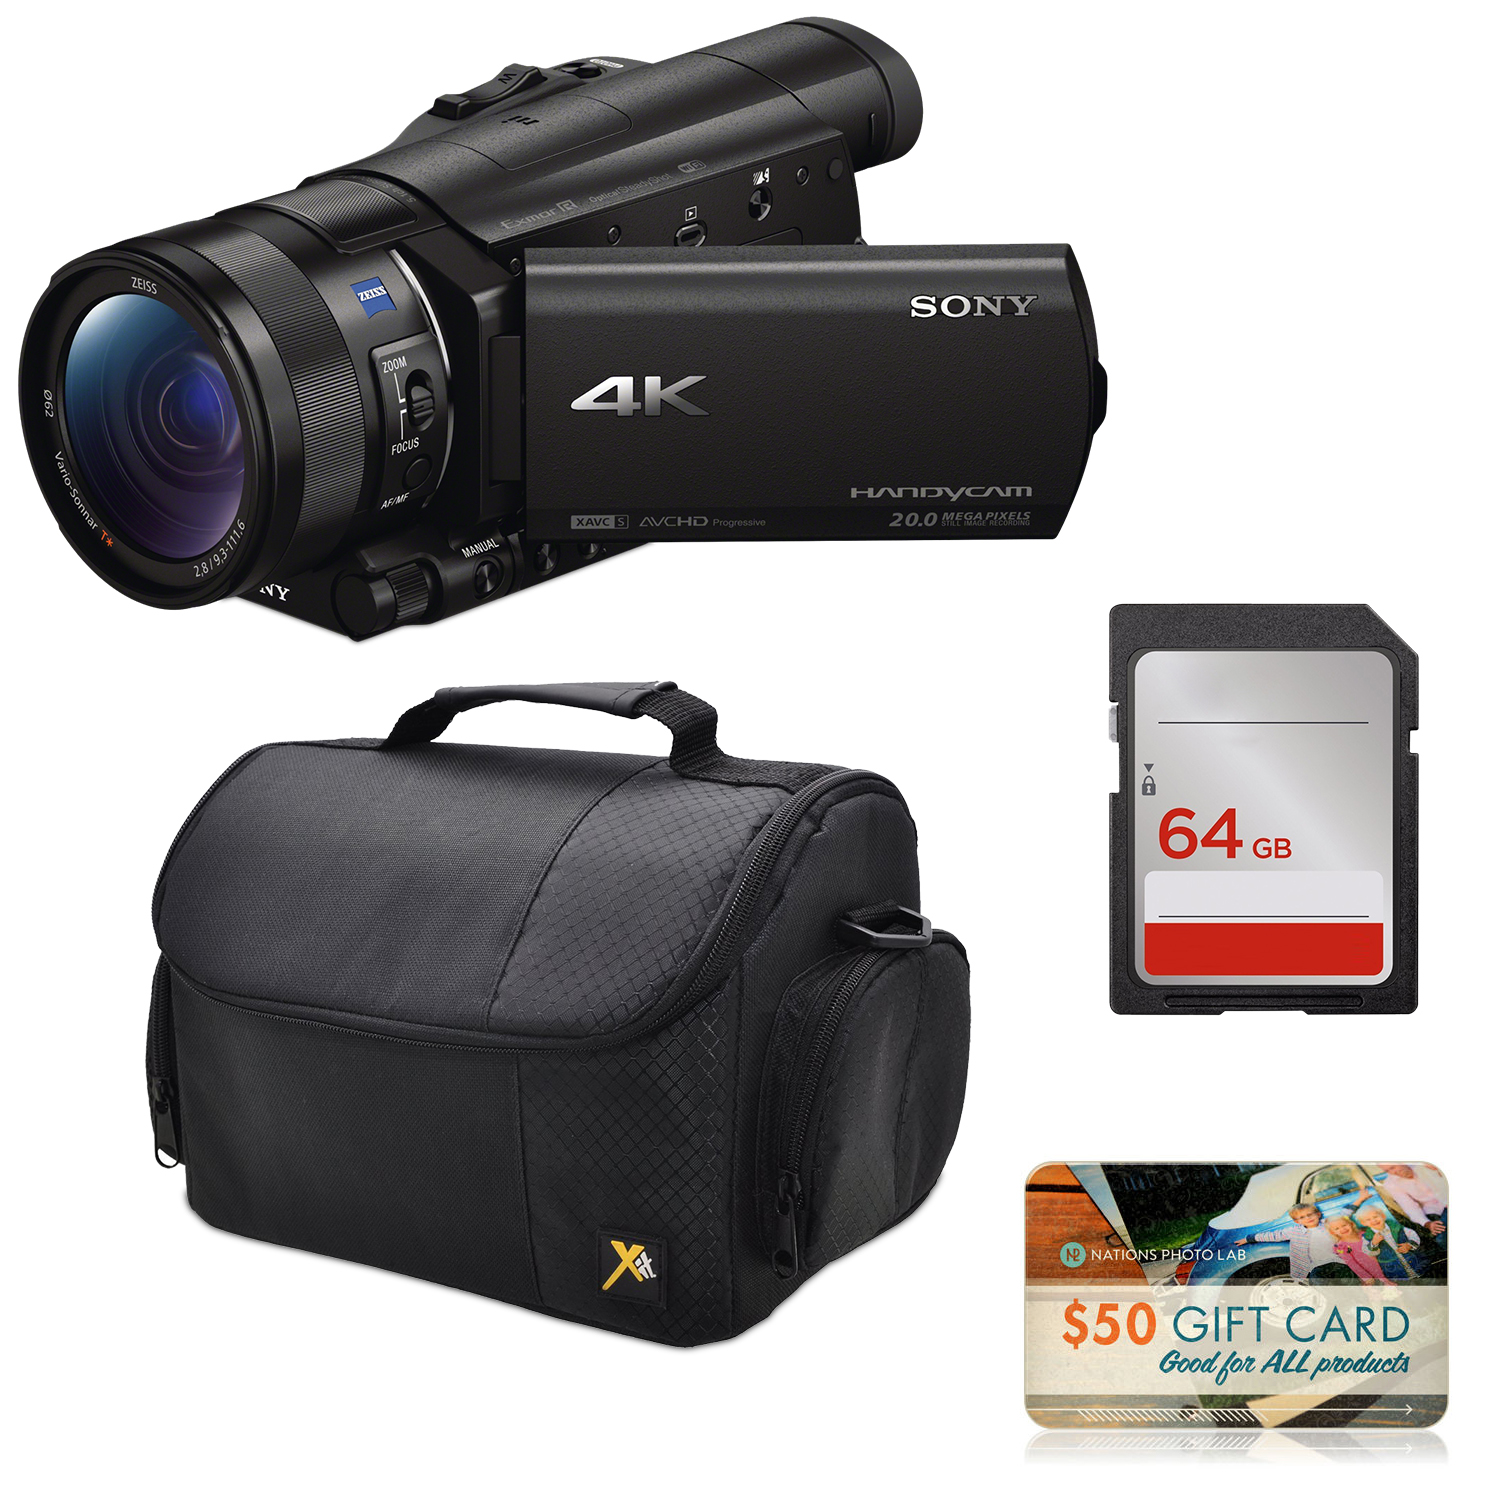 Sony FDR-AX100 4K Ultra HD Camcorder Video Camera + 64GB SD Card Memory, Carrying Case, $50 Nations Photo Lab Gift Card